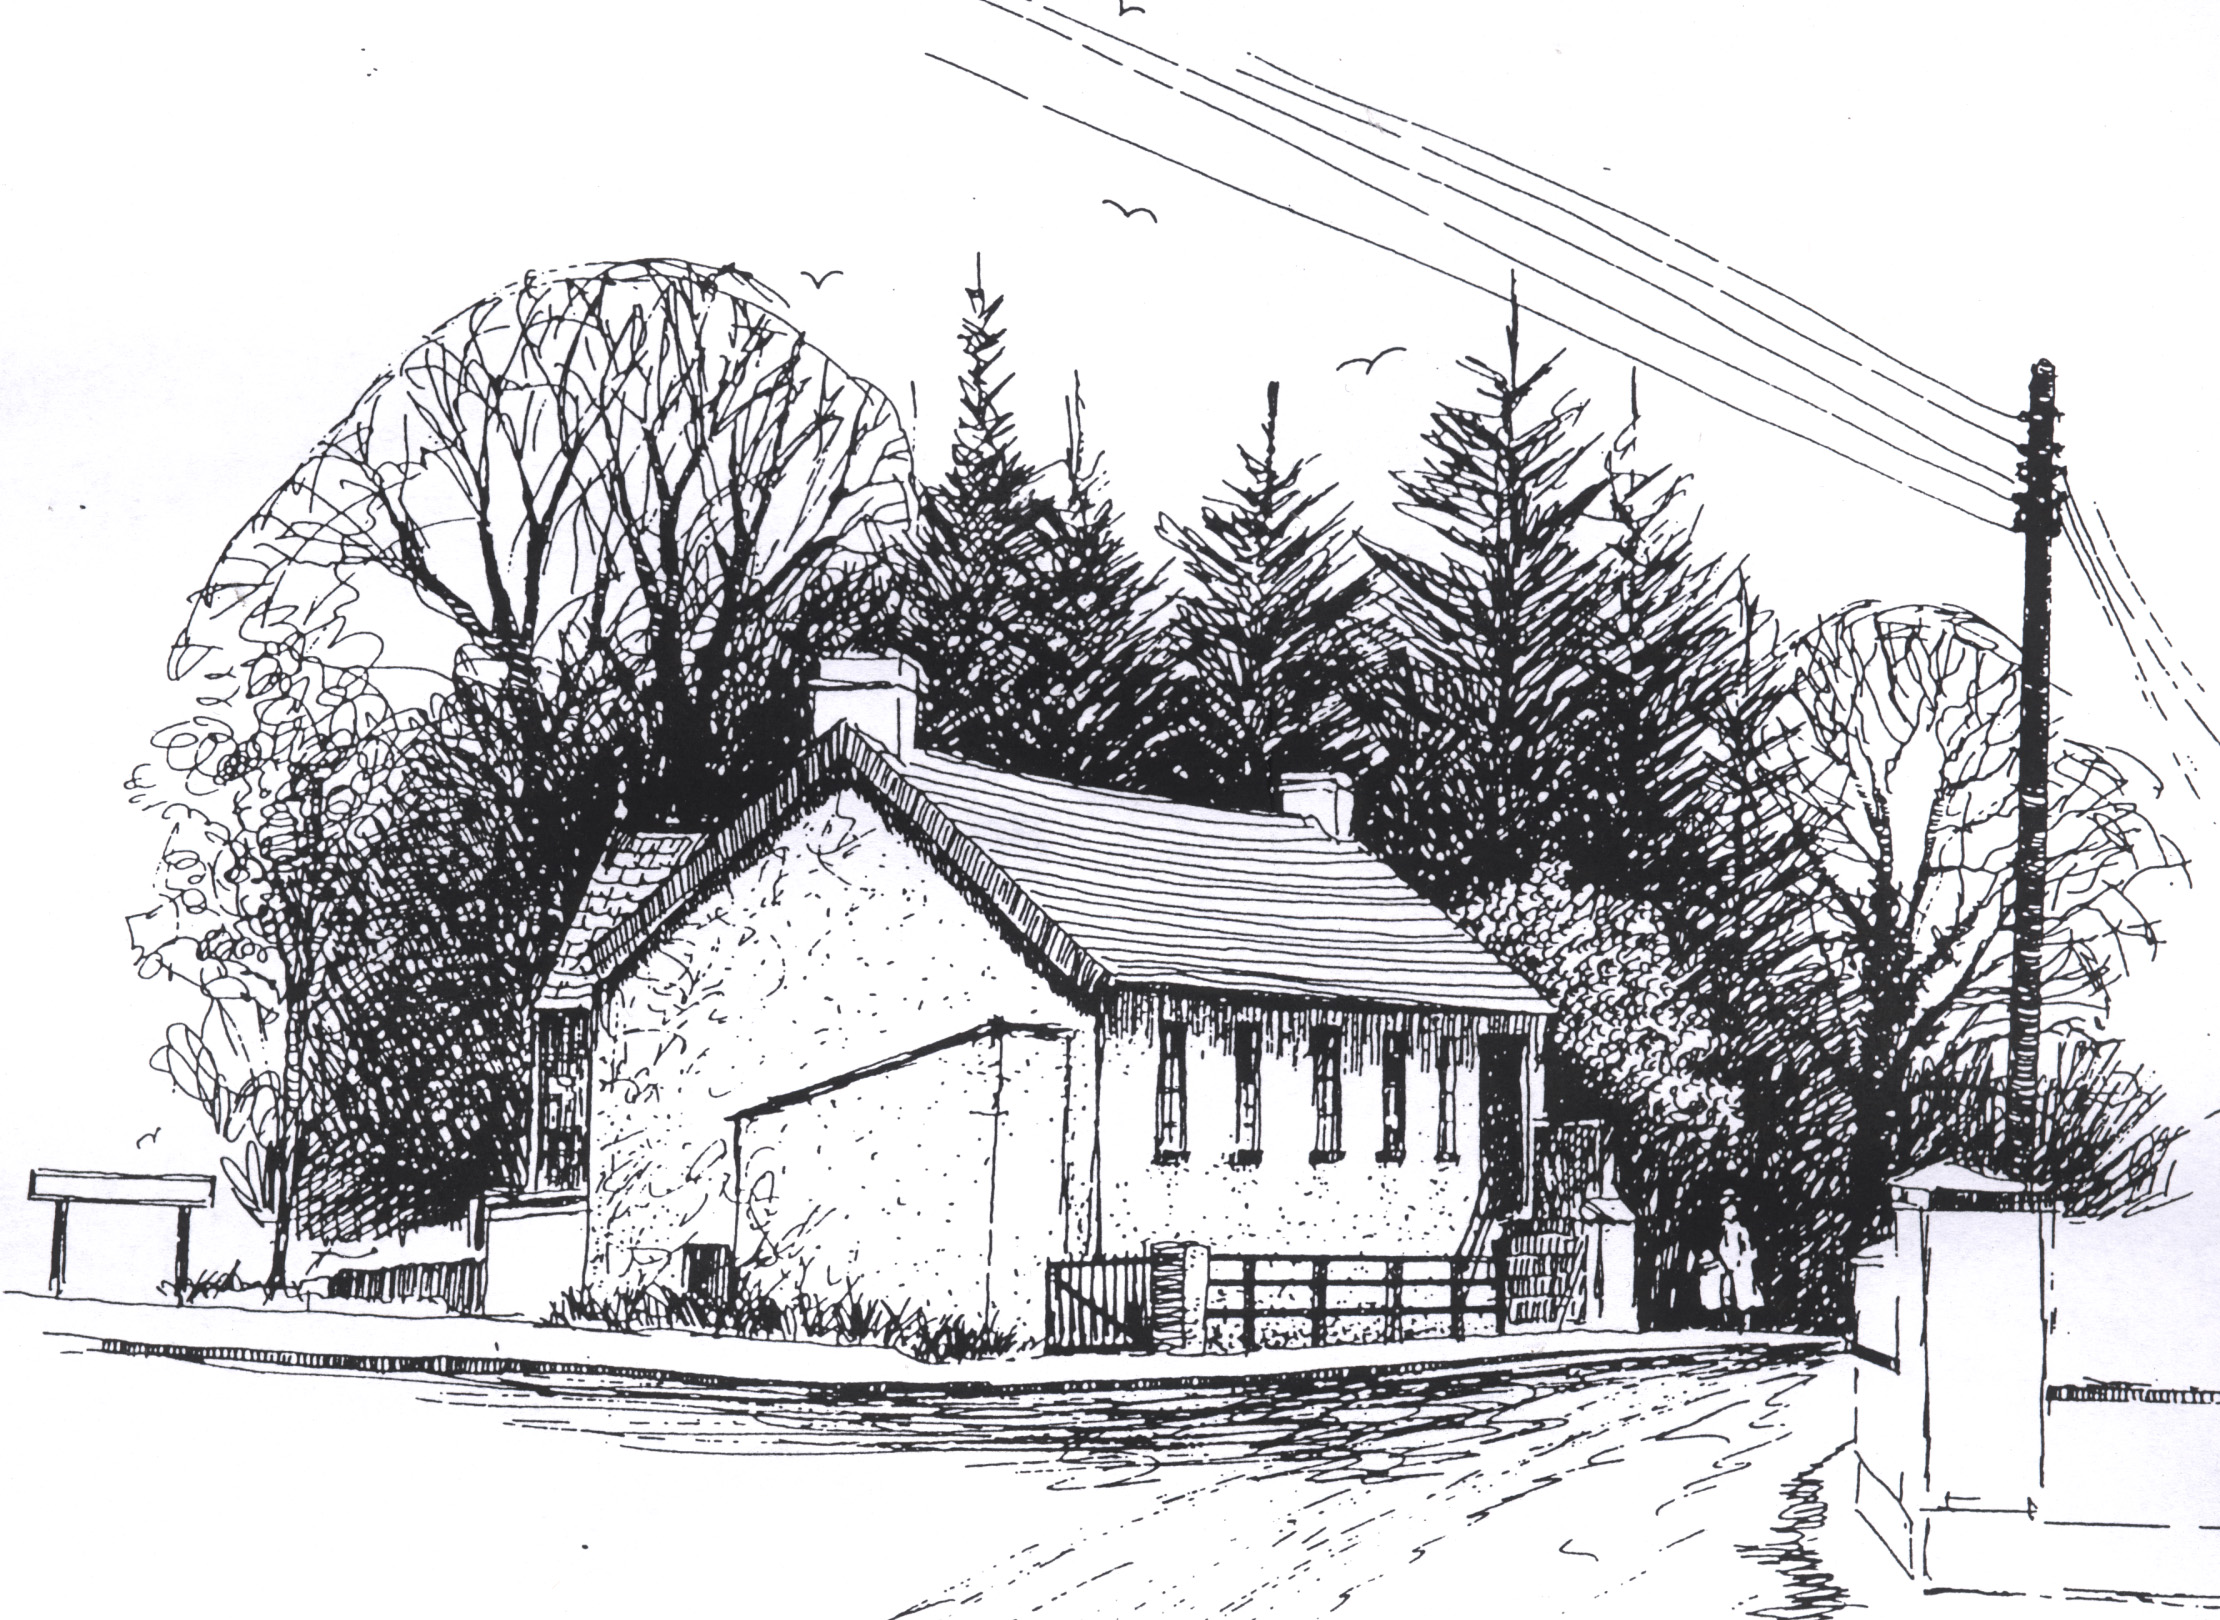 This sketch is by local artist Ronnie Hynds and shows the Gateway Building on the Gilford Road.